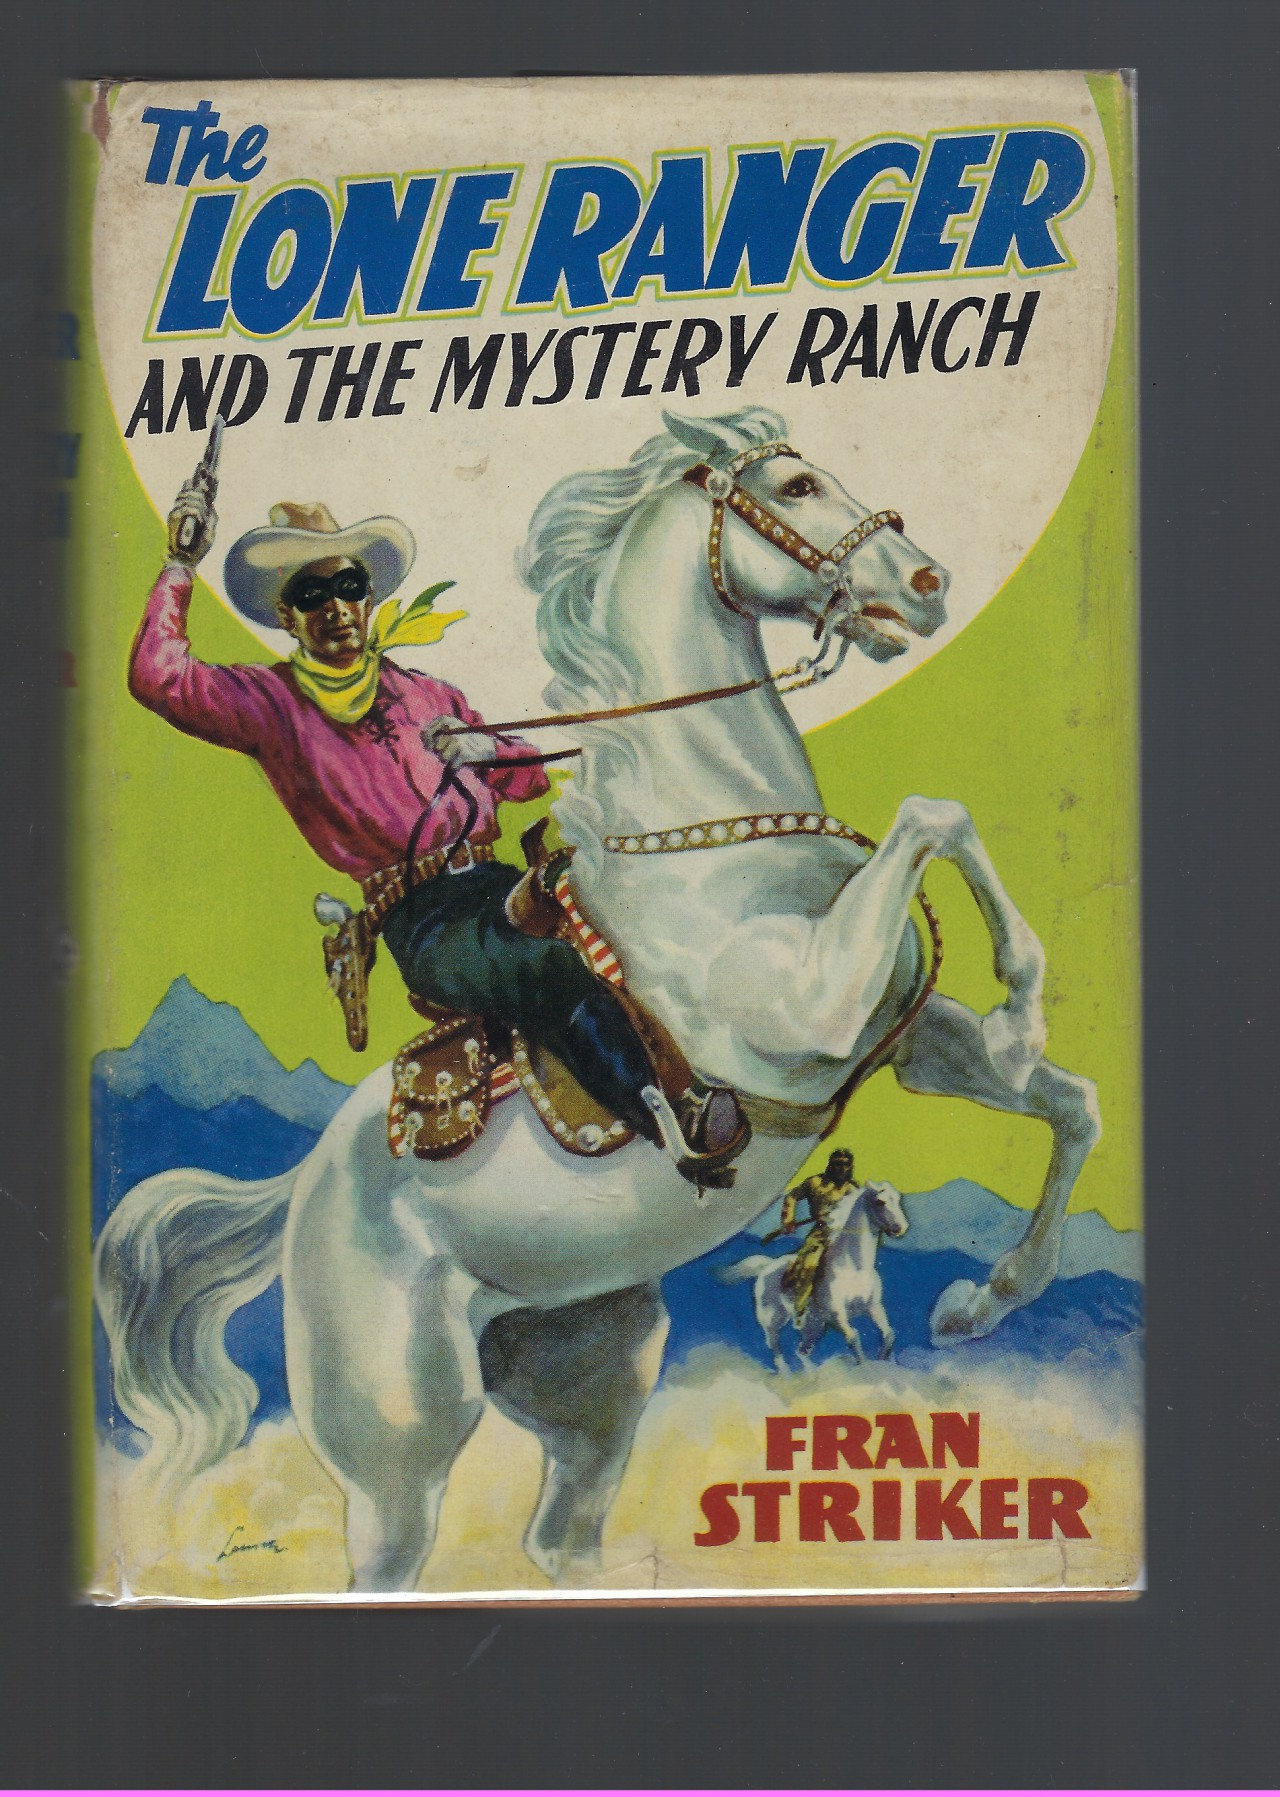 The Lone Ranger and the Mystery Ranch #2 (Early Edition) HB/DJ, Striker, Francis Hamilton